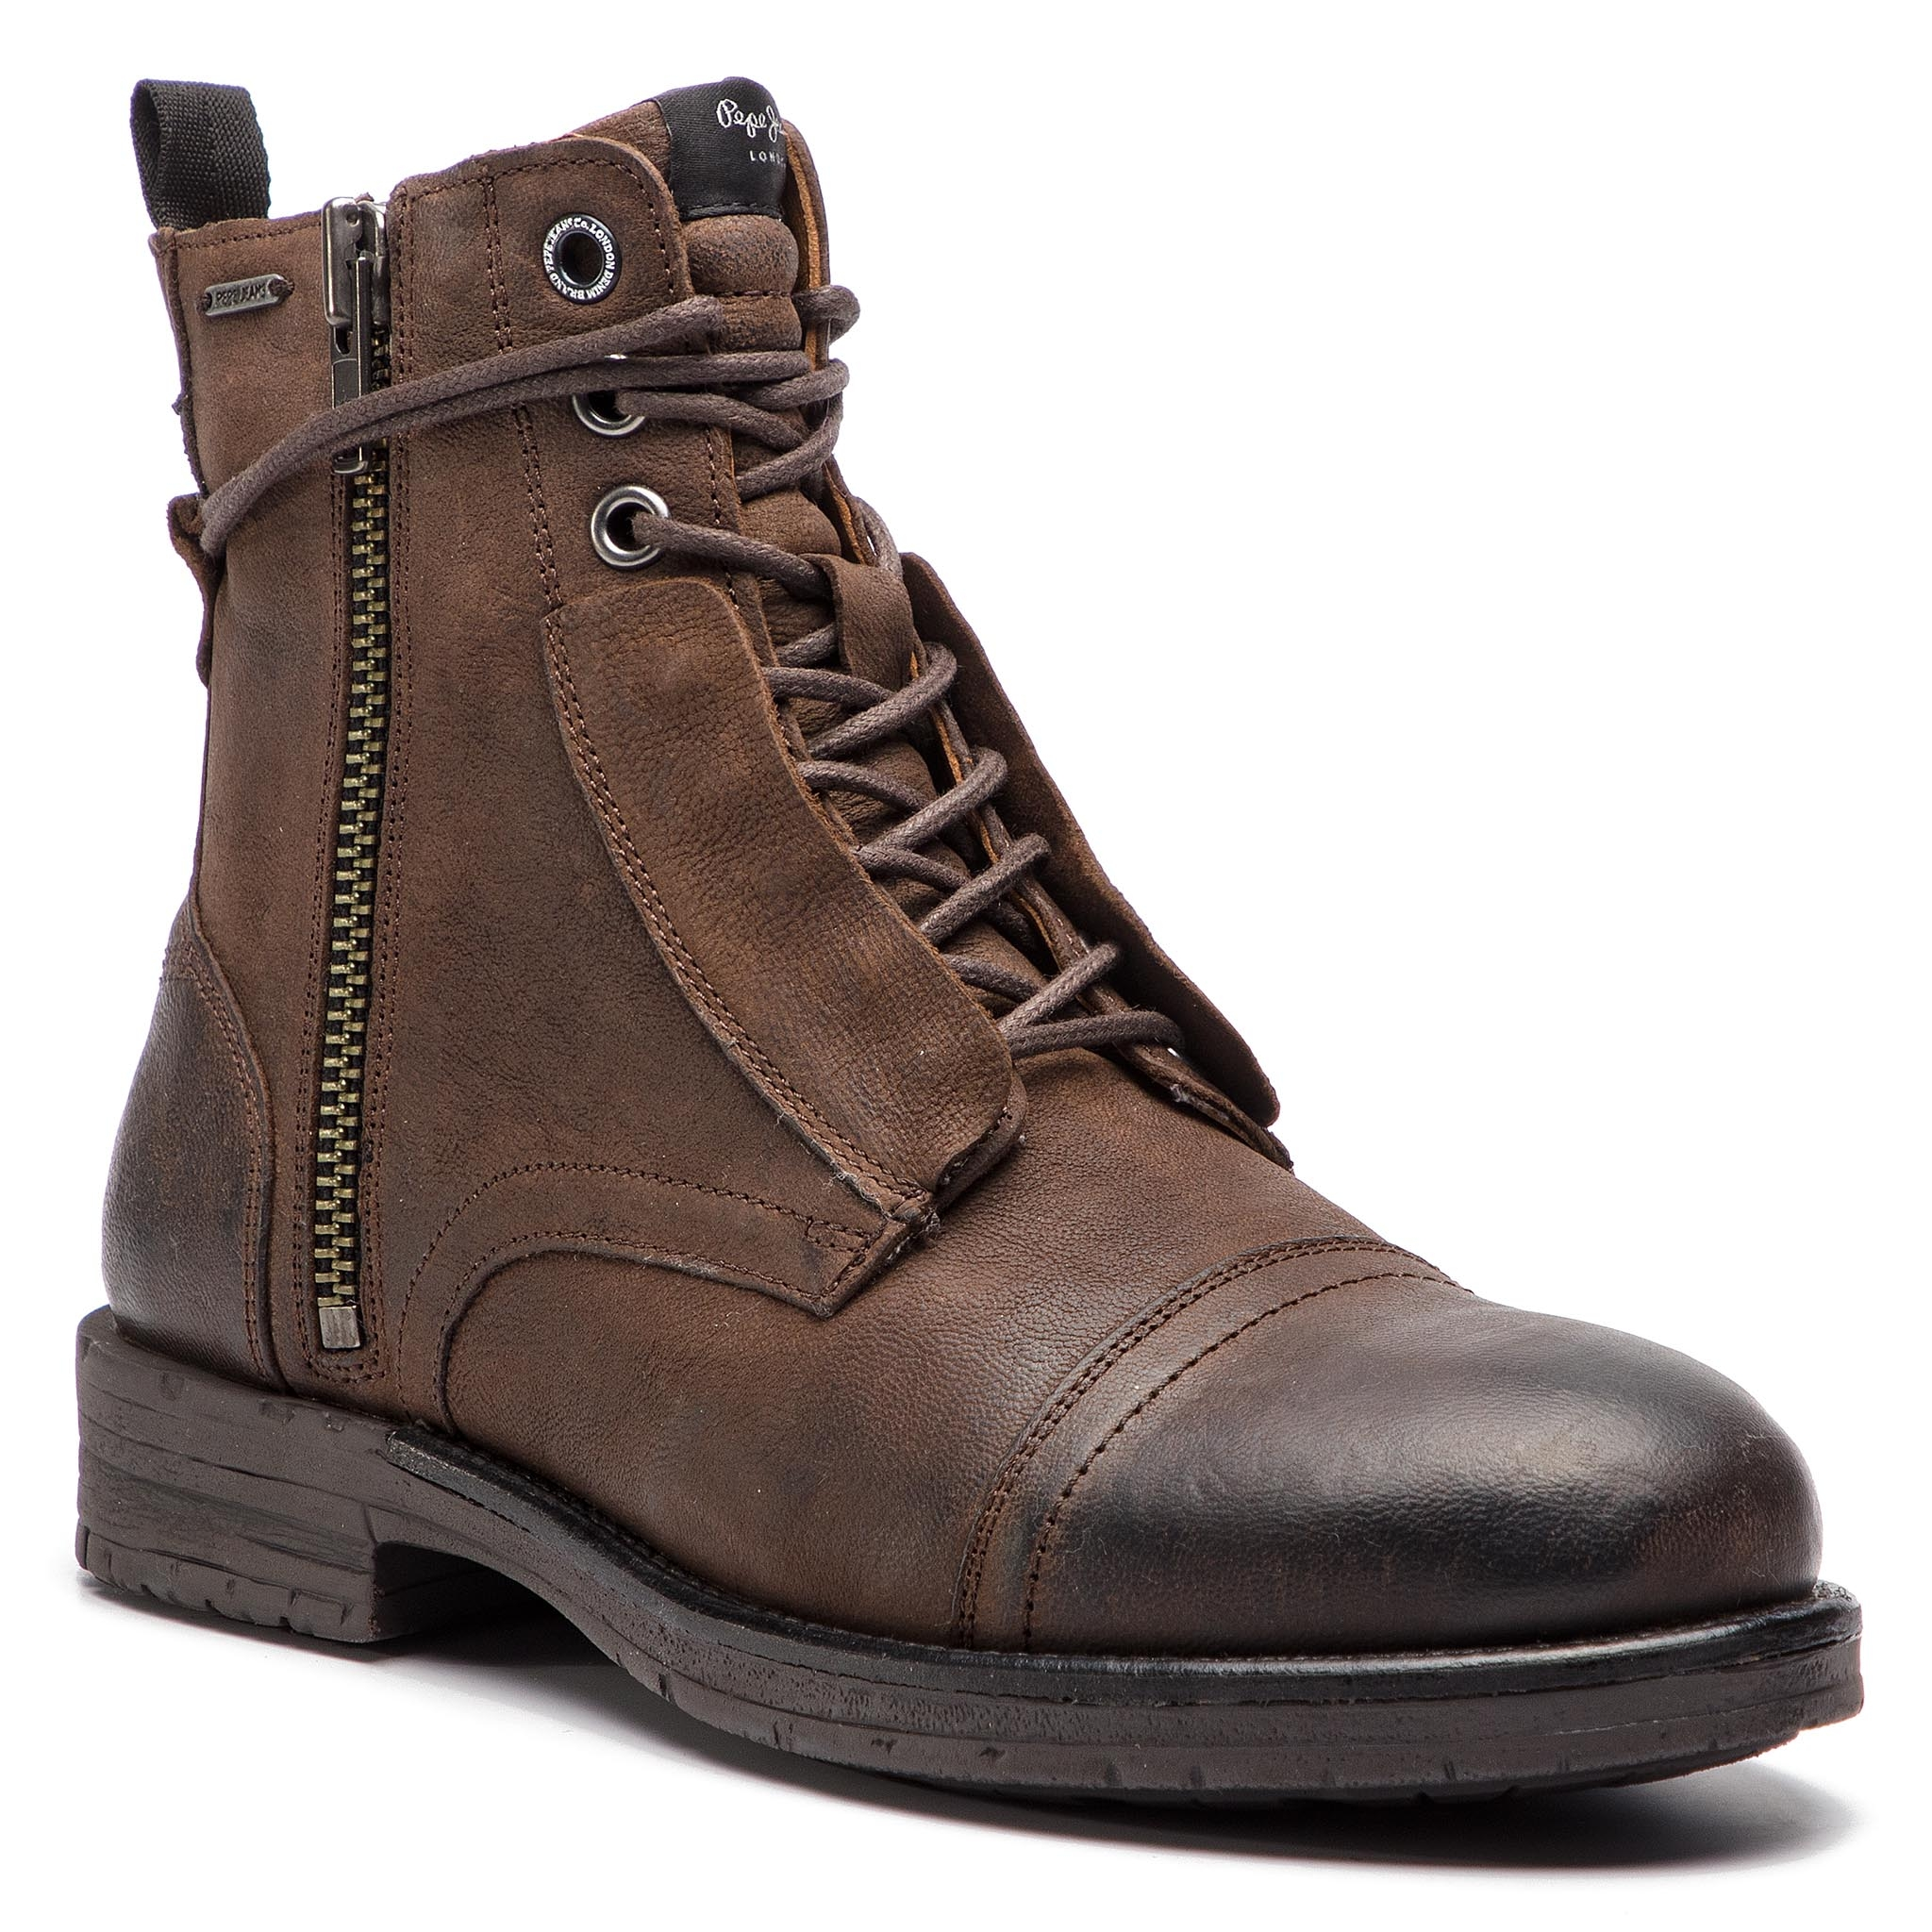 Cizme PEPE JEANS - Tom Cut Boot PMS50162 Stag 884